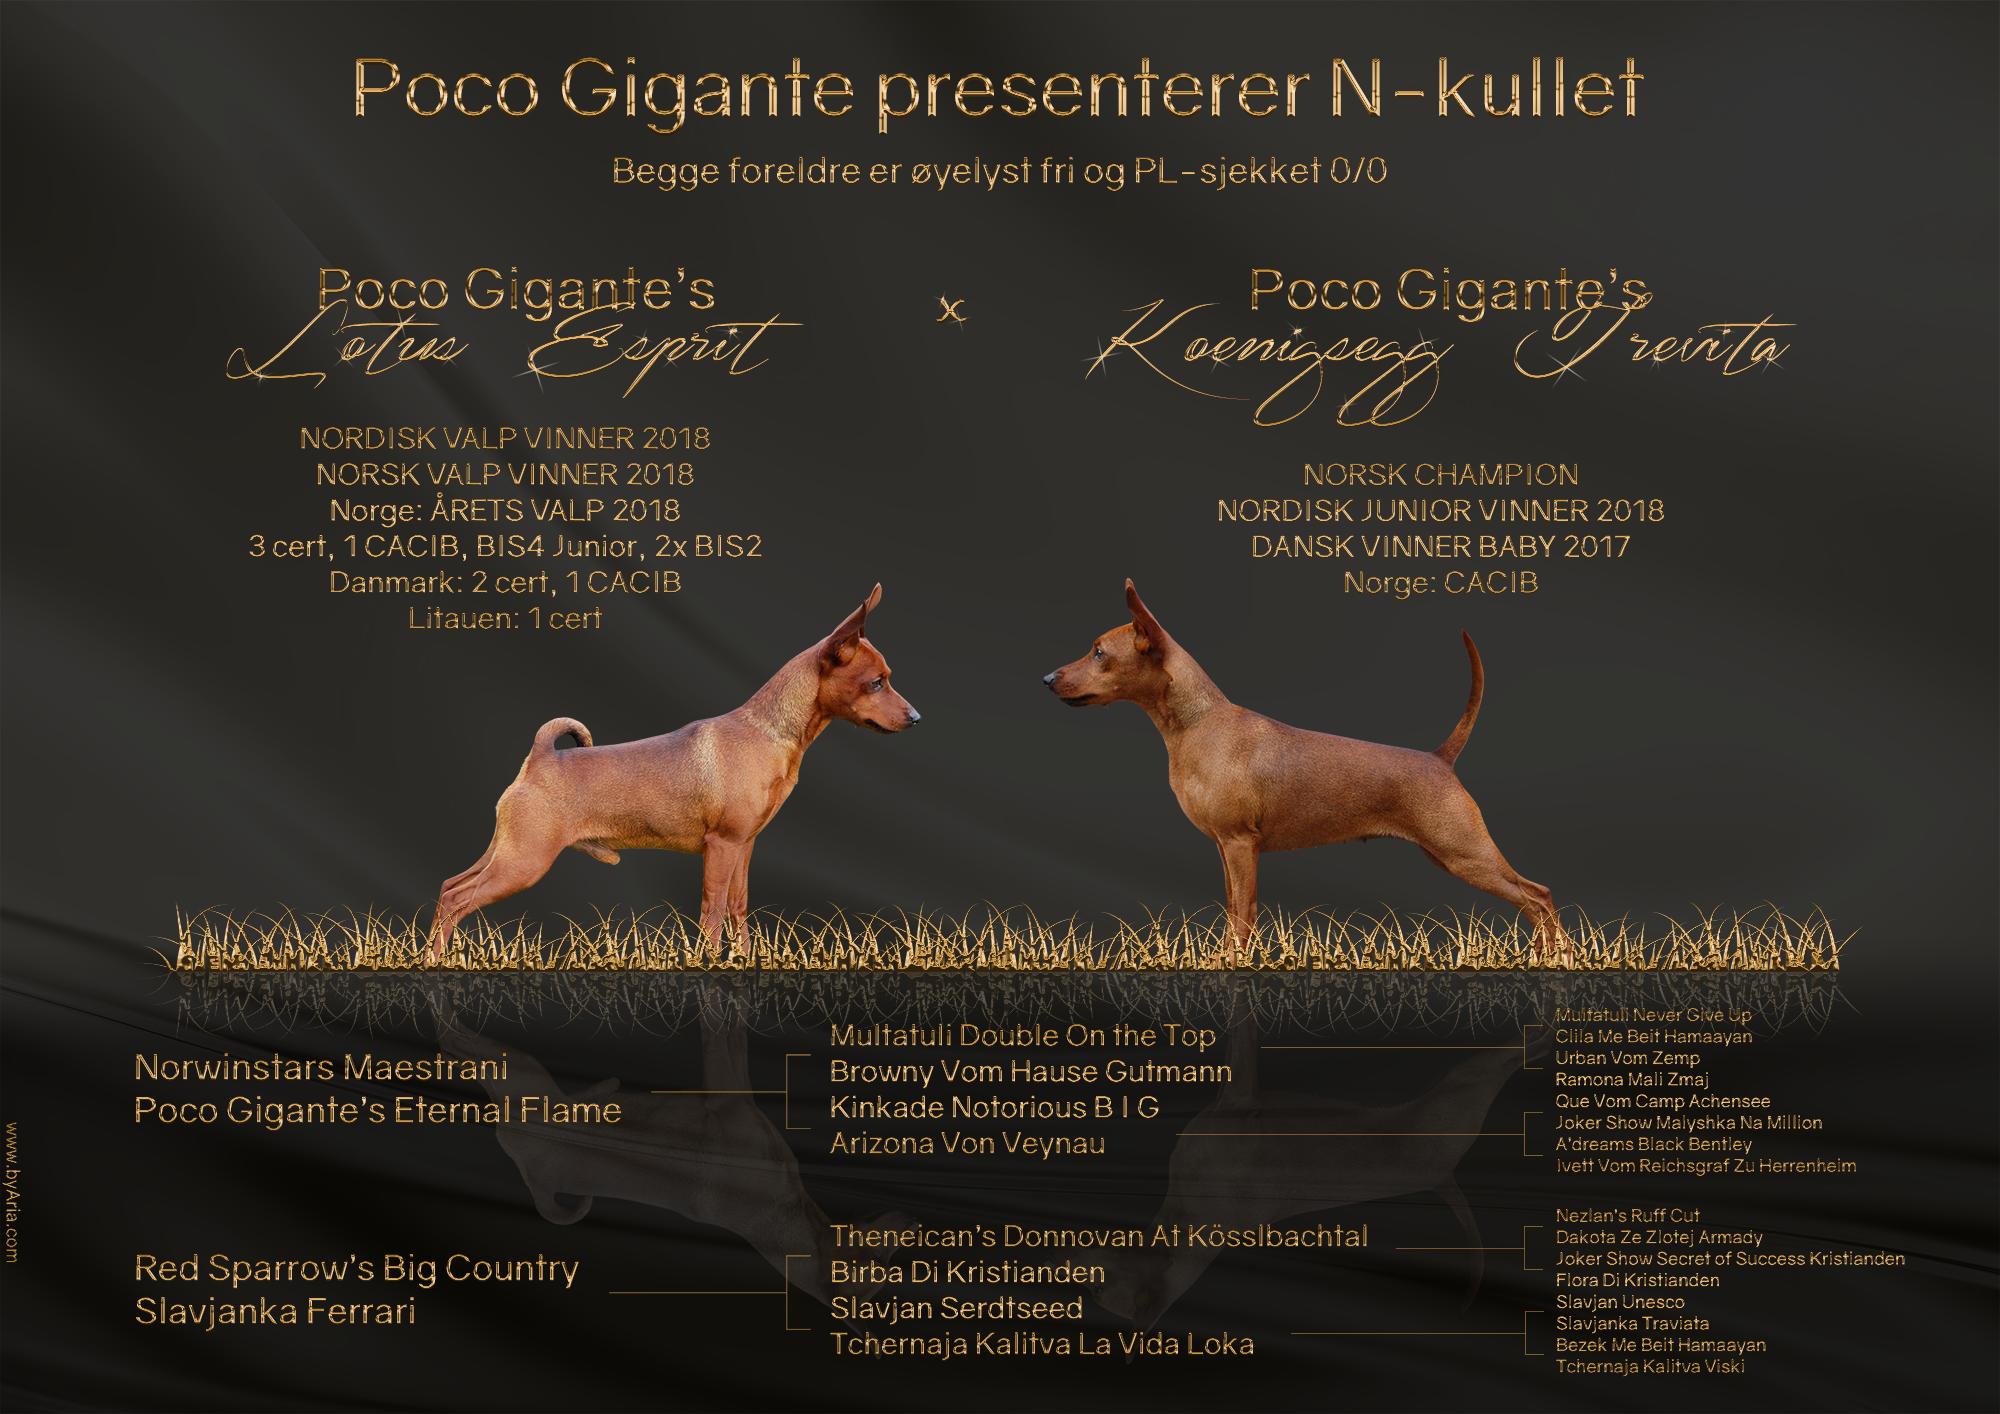 Presents-PocoGigante-N-byAria